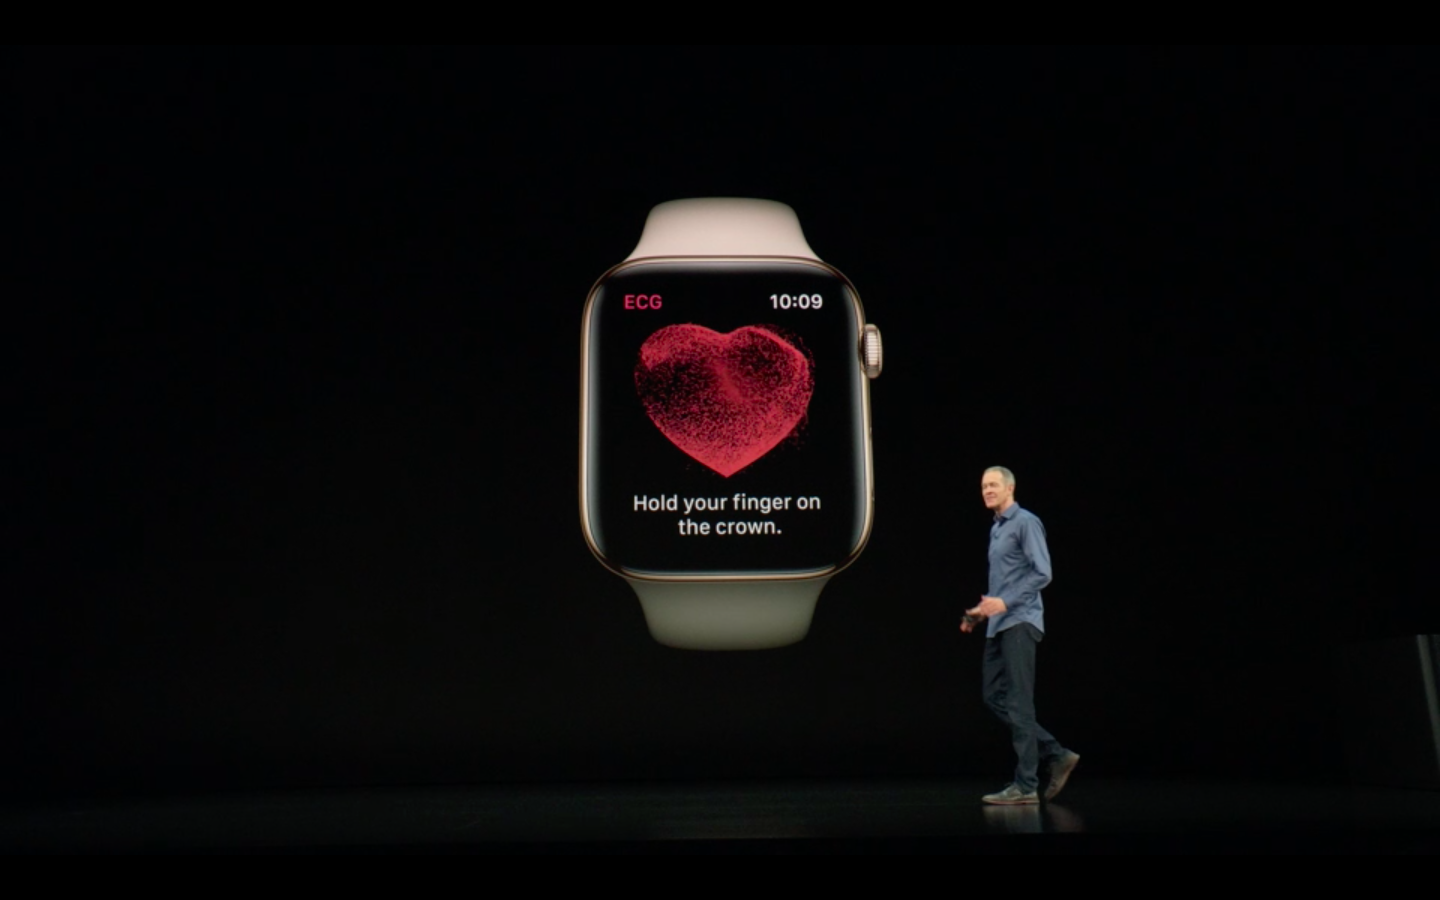 Nieuwe Apple Watch 4